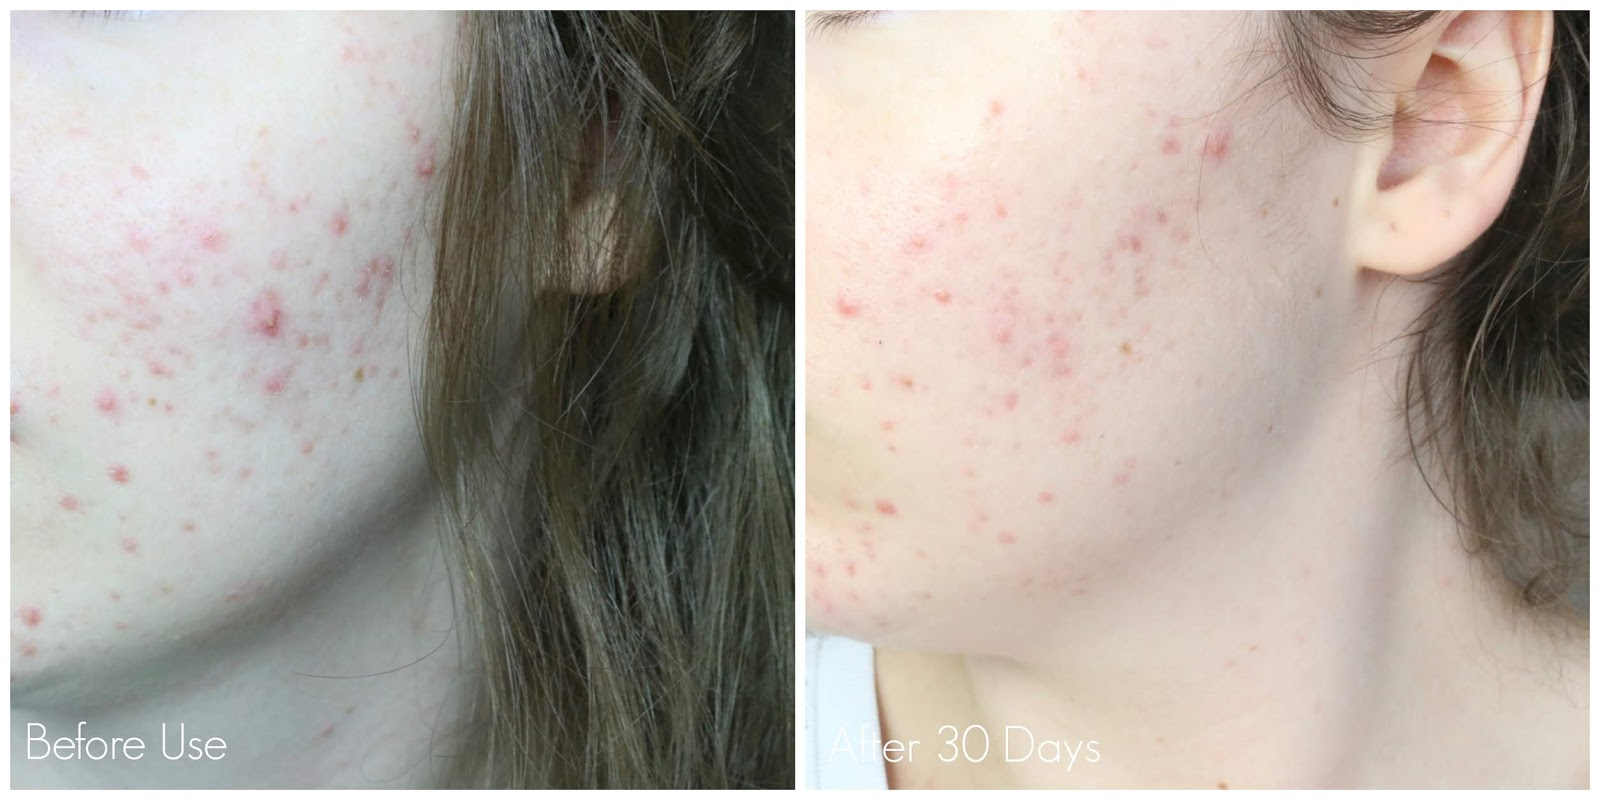 Neutrogena Visibly Clear Light Therapy Acne Mask Before & After